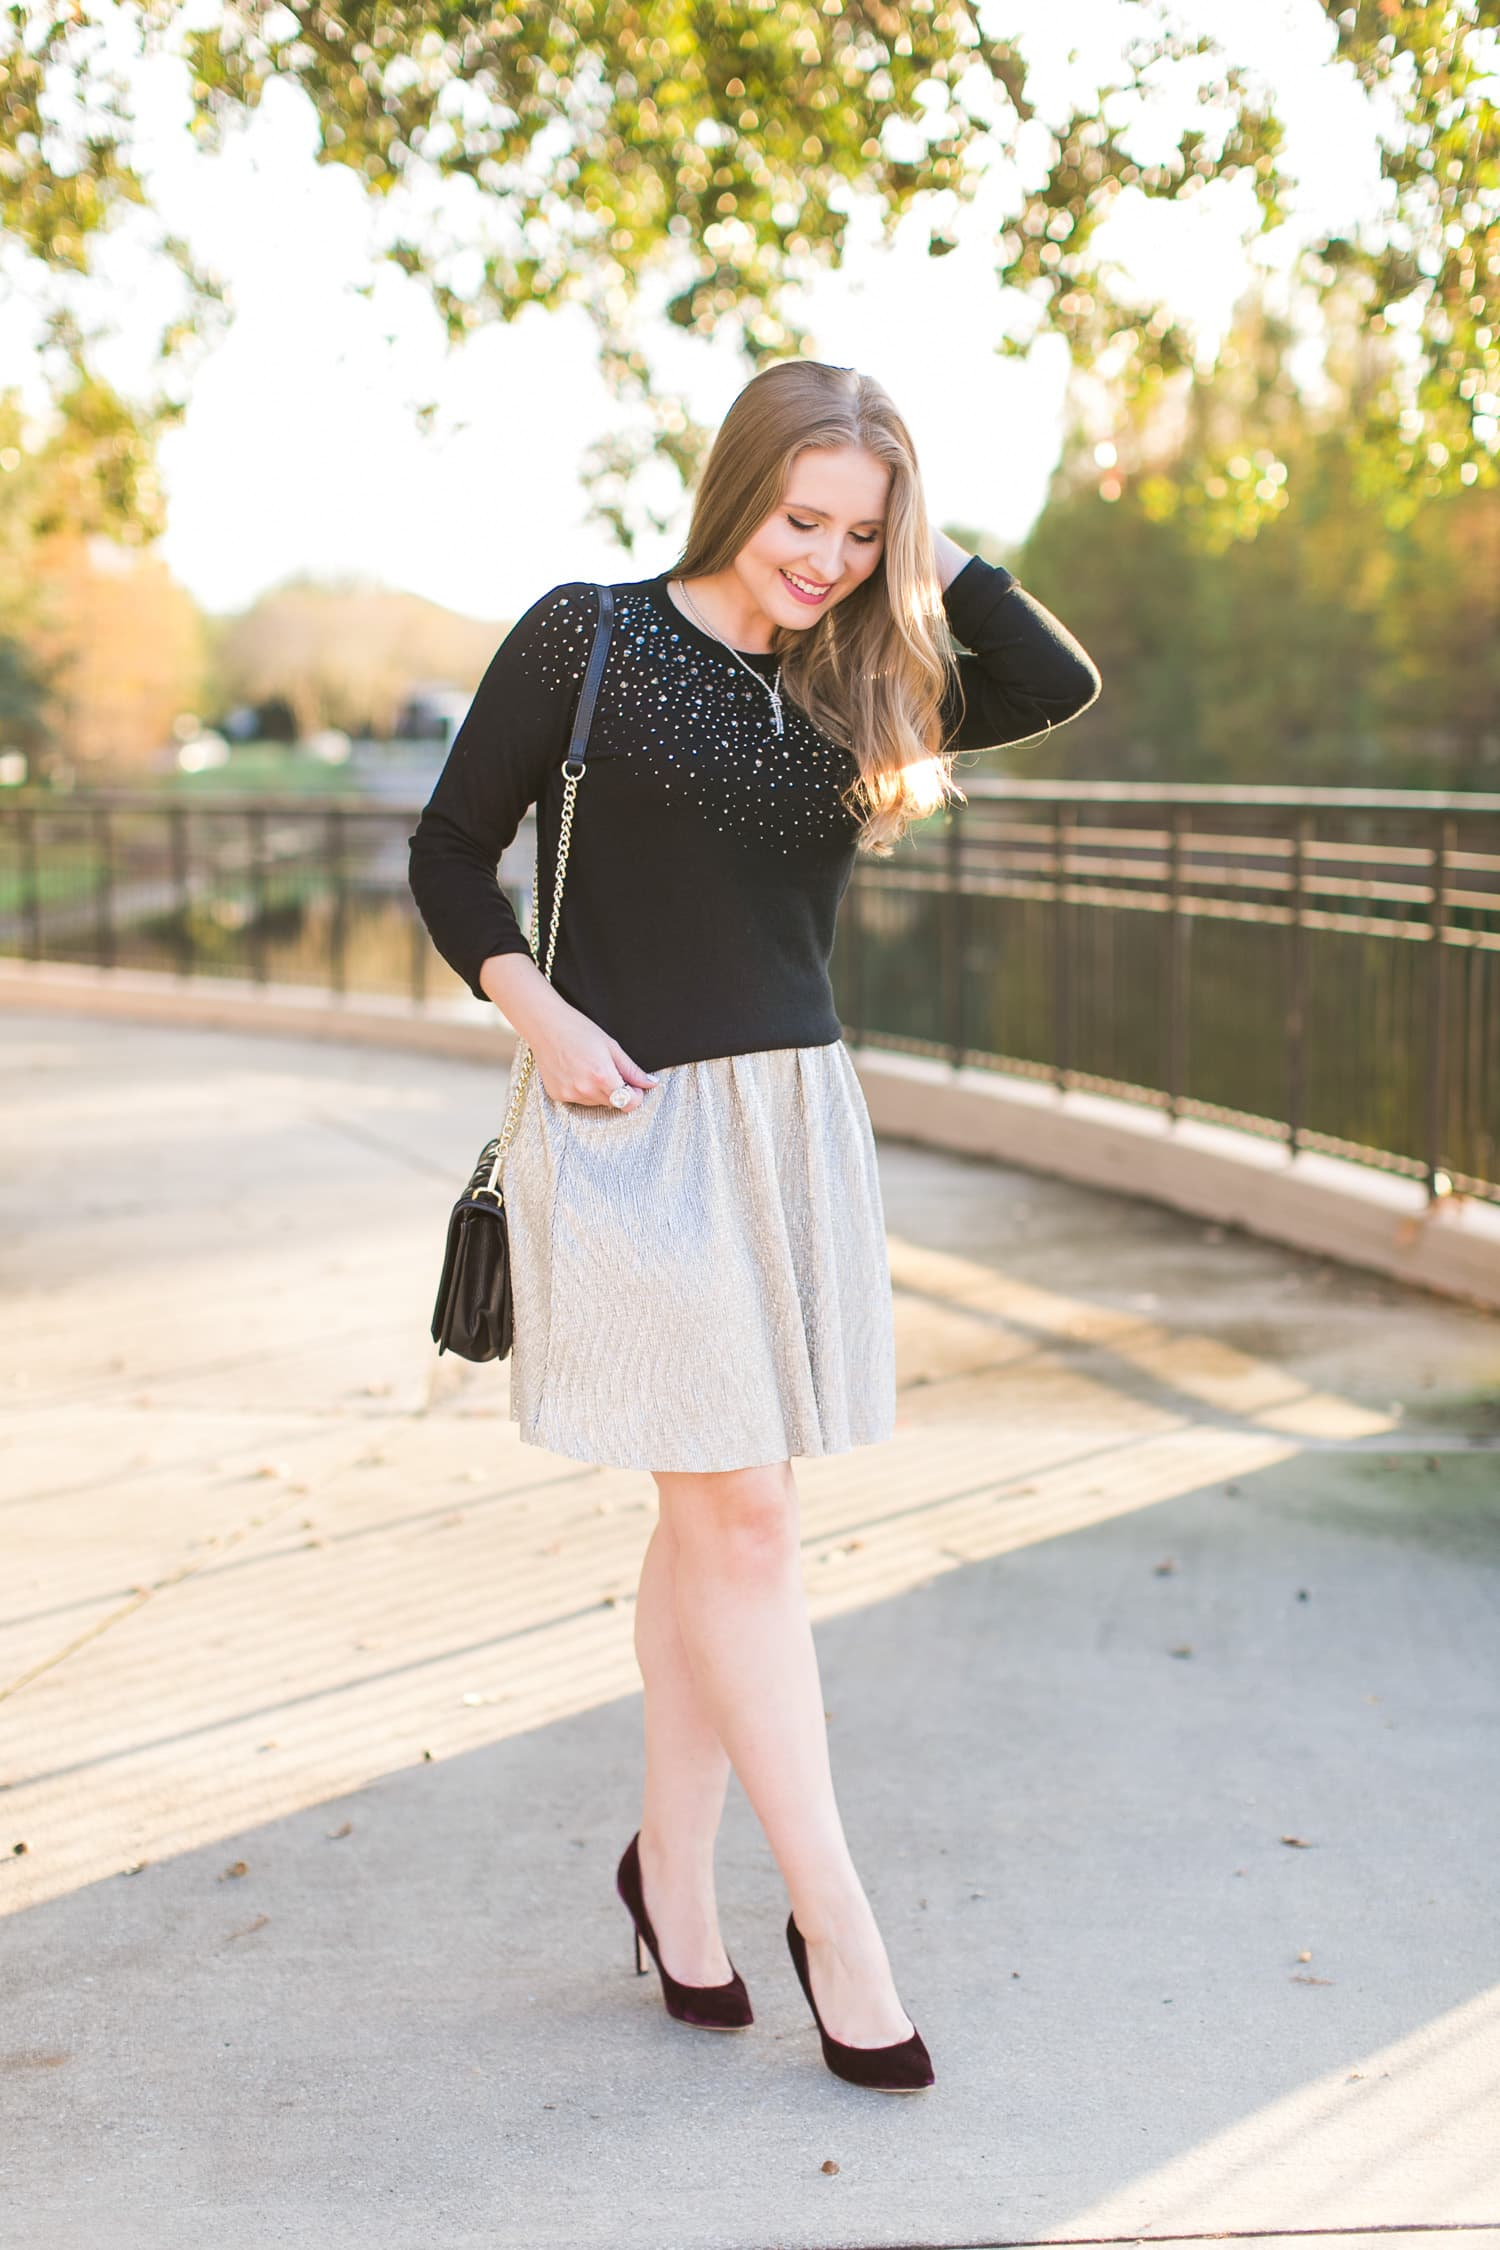 3 Easy Ways to Style a Sweater and Skirt